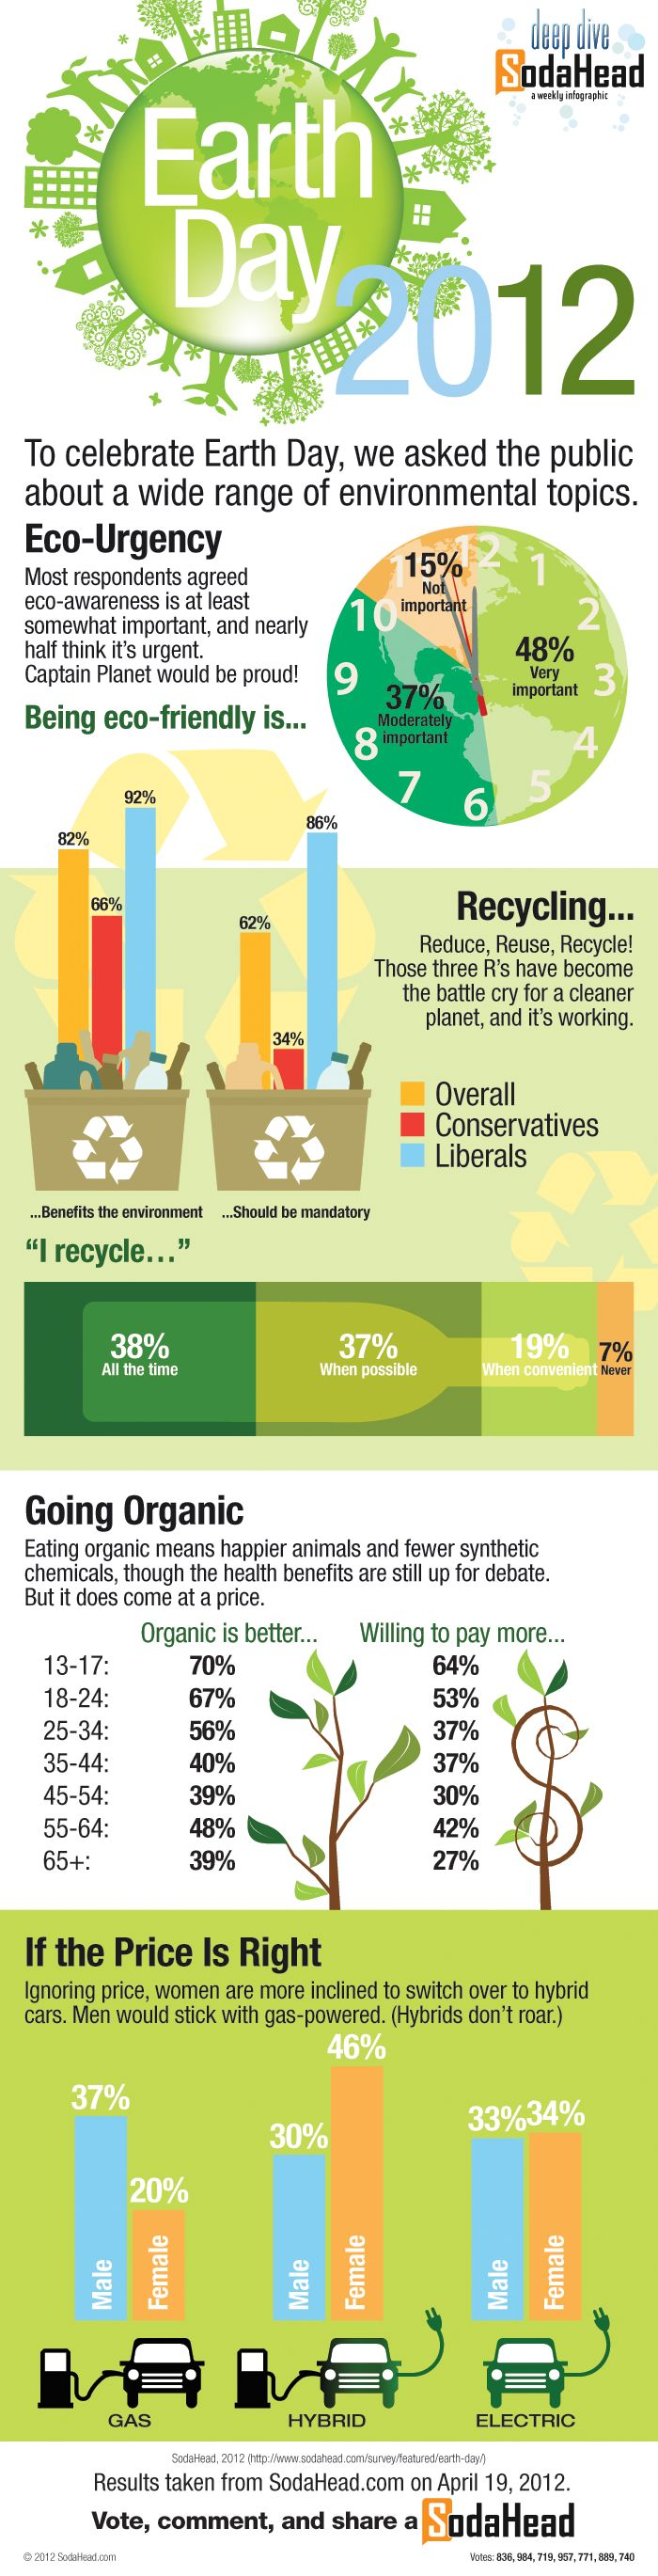 Earth Day 2012: What do we think about the environment?